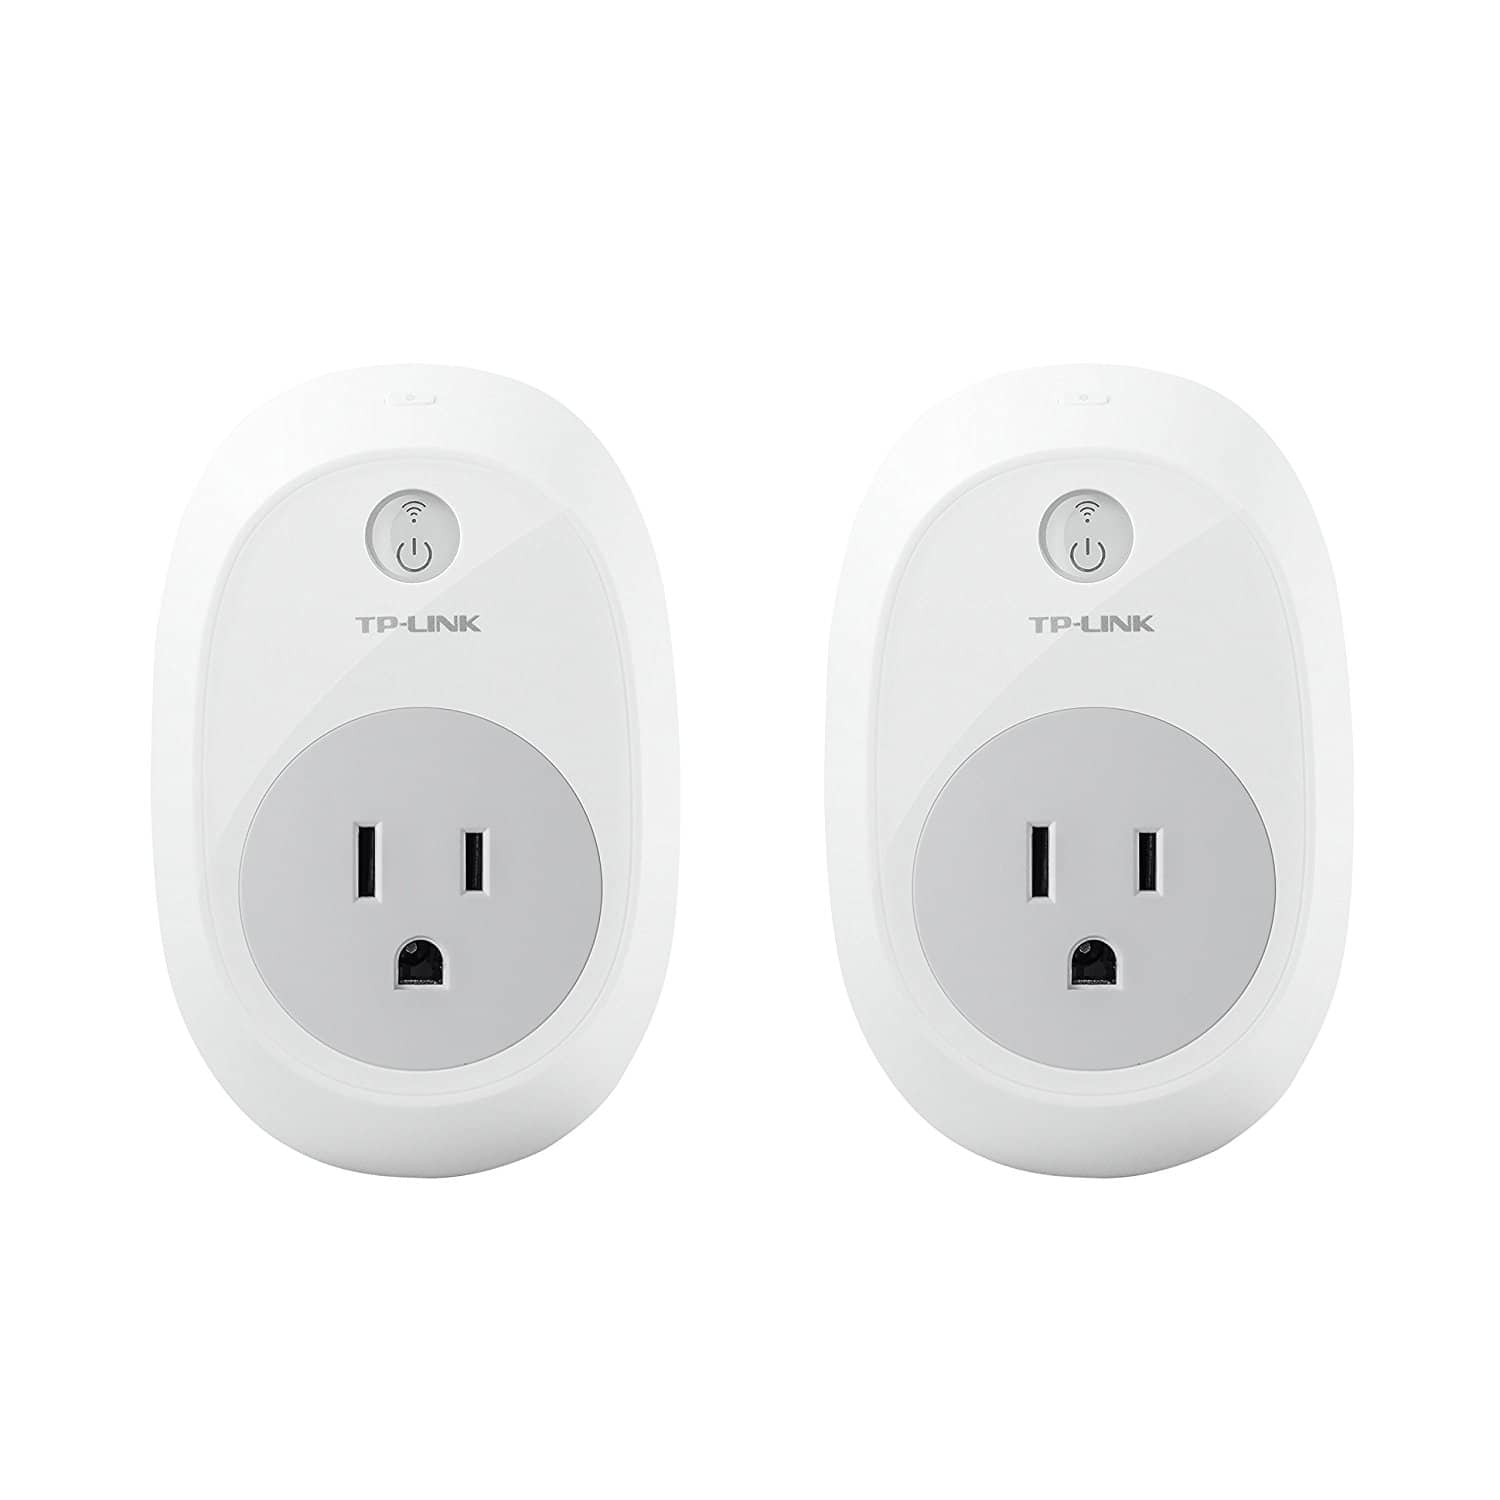 Amazon treasure truck: TP-Link HS100 Smart Plug (2-Pack) Works with Alexa and Google Assistant on sale for $34